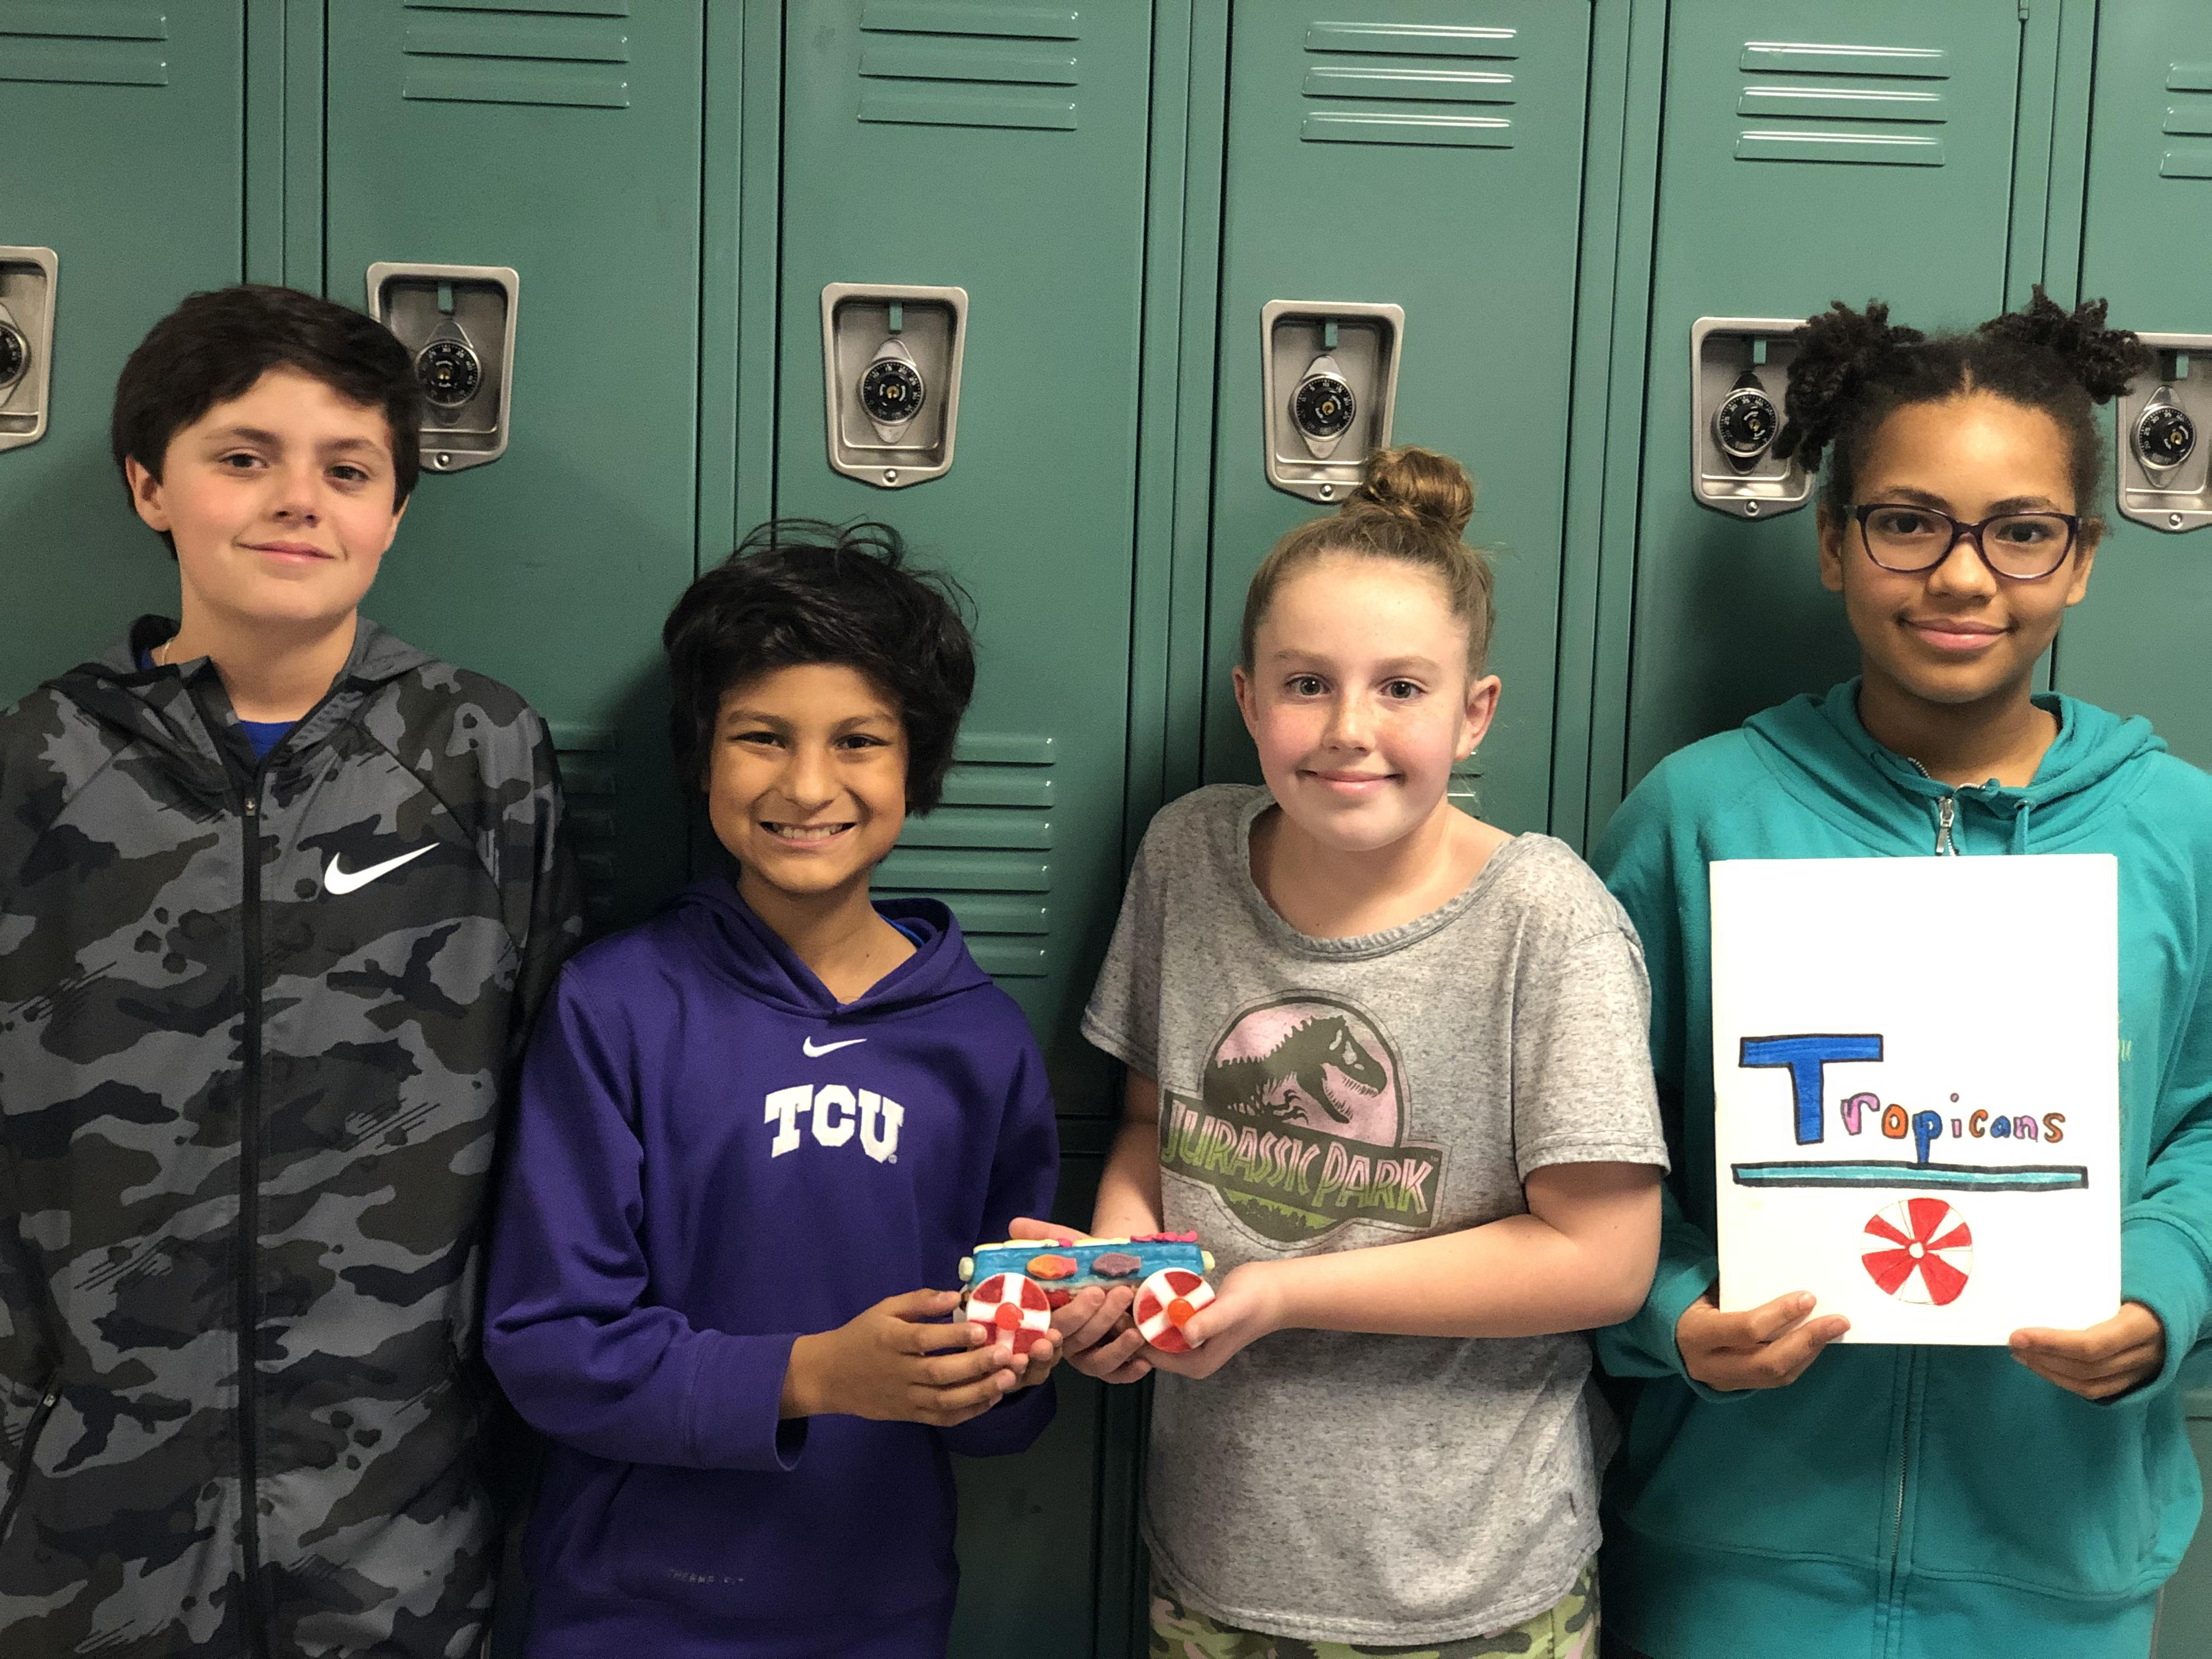 Tannahill's Tropicans team of Ella Newsome, Brennan Maitlin, Caden Cato andMiguel Carrera won First Place Overall.